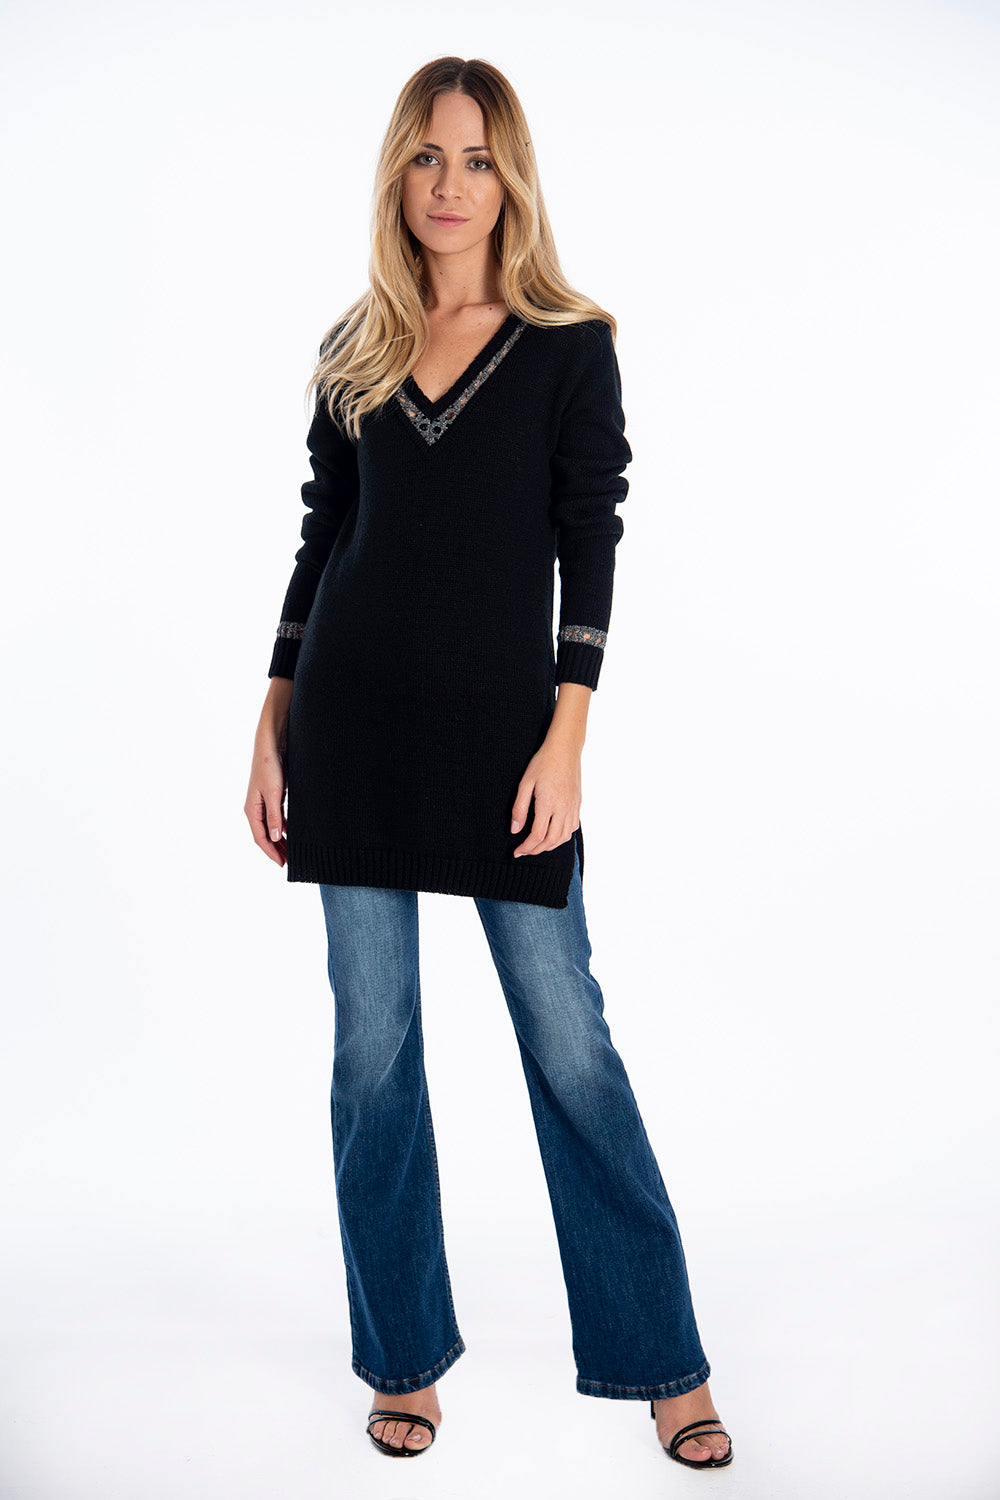 Infinity V neck jumper with chain design